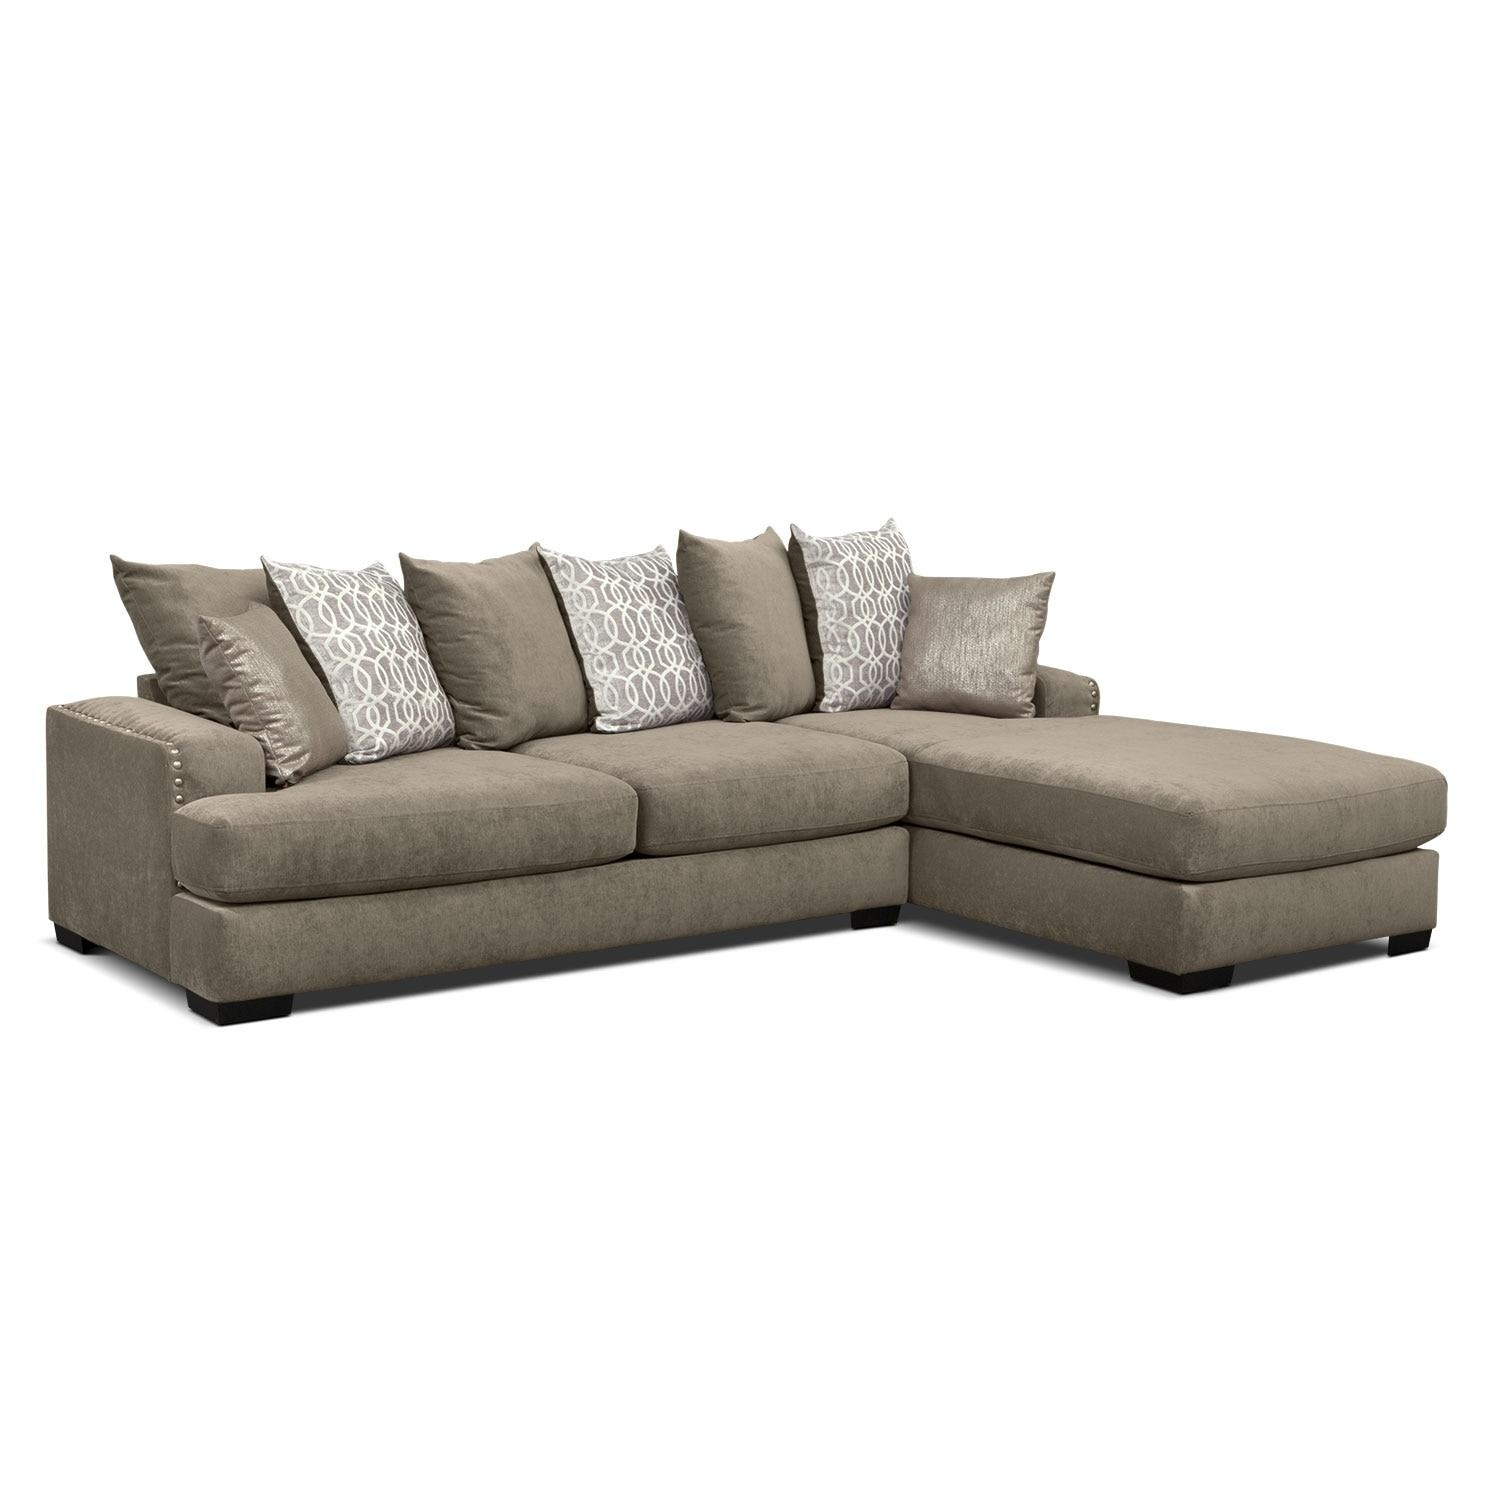 Tempo 2 Piece Sectional With Right Facing Chaise – Platinum Throughout Sectional With 2 Chaises (Image 20 of 20)